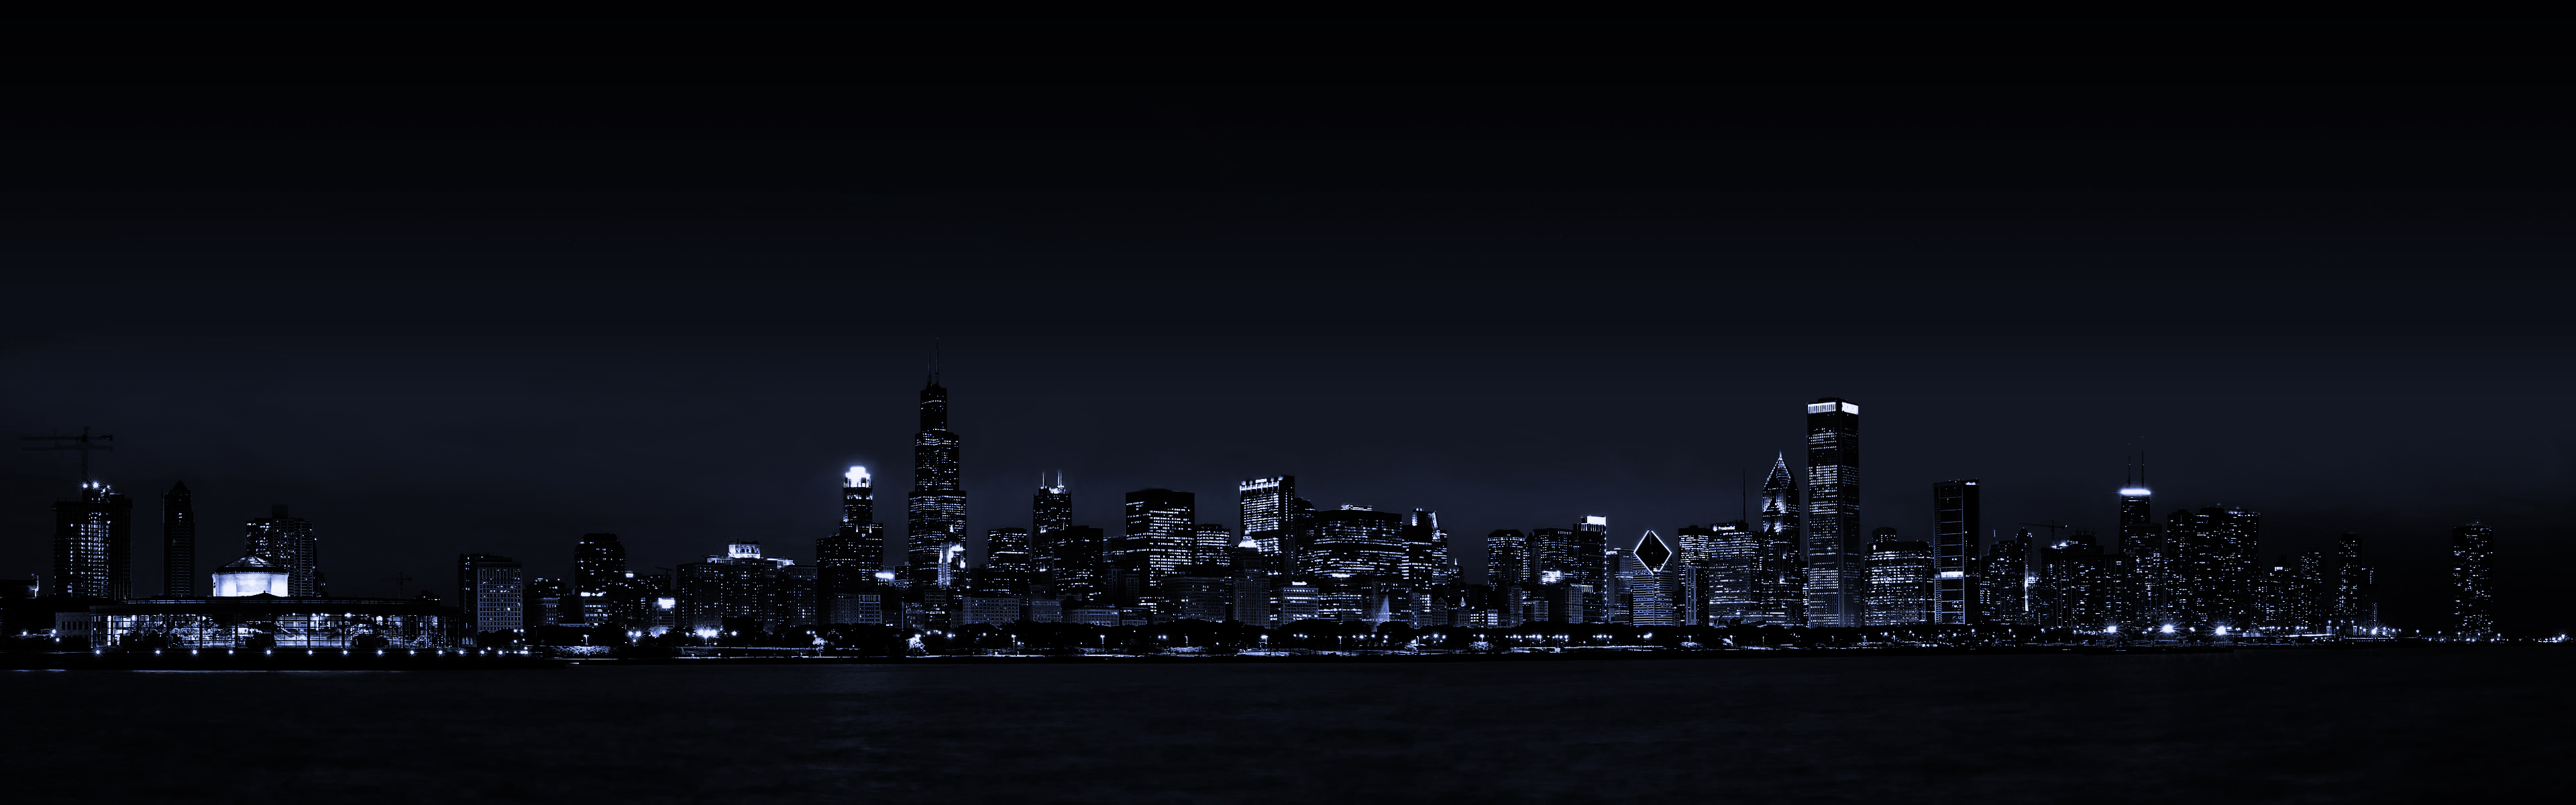 Background image 3840x1200 - You Are Viewing